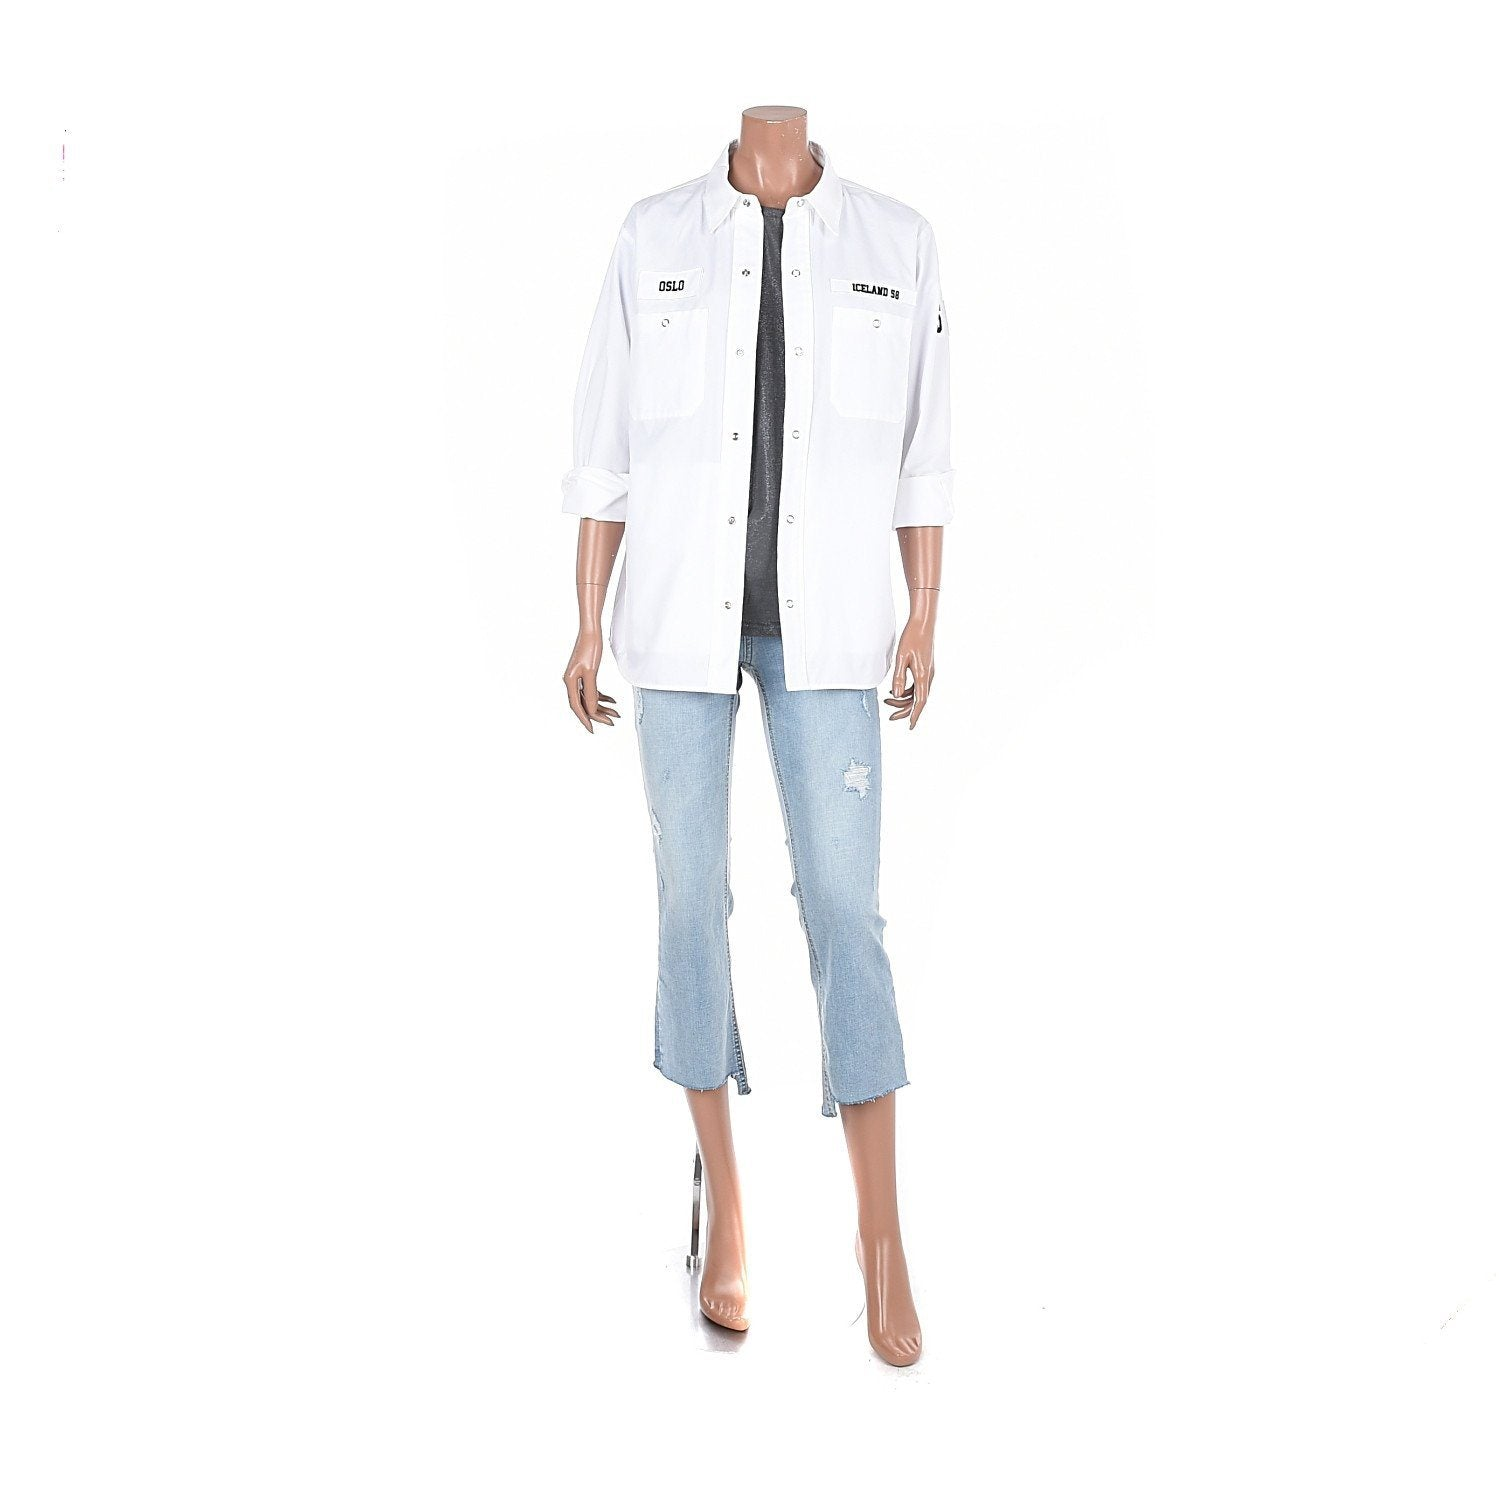 --Siero Wear, Wappen detail jacket style Shirt, women clothes--